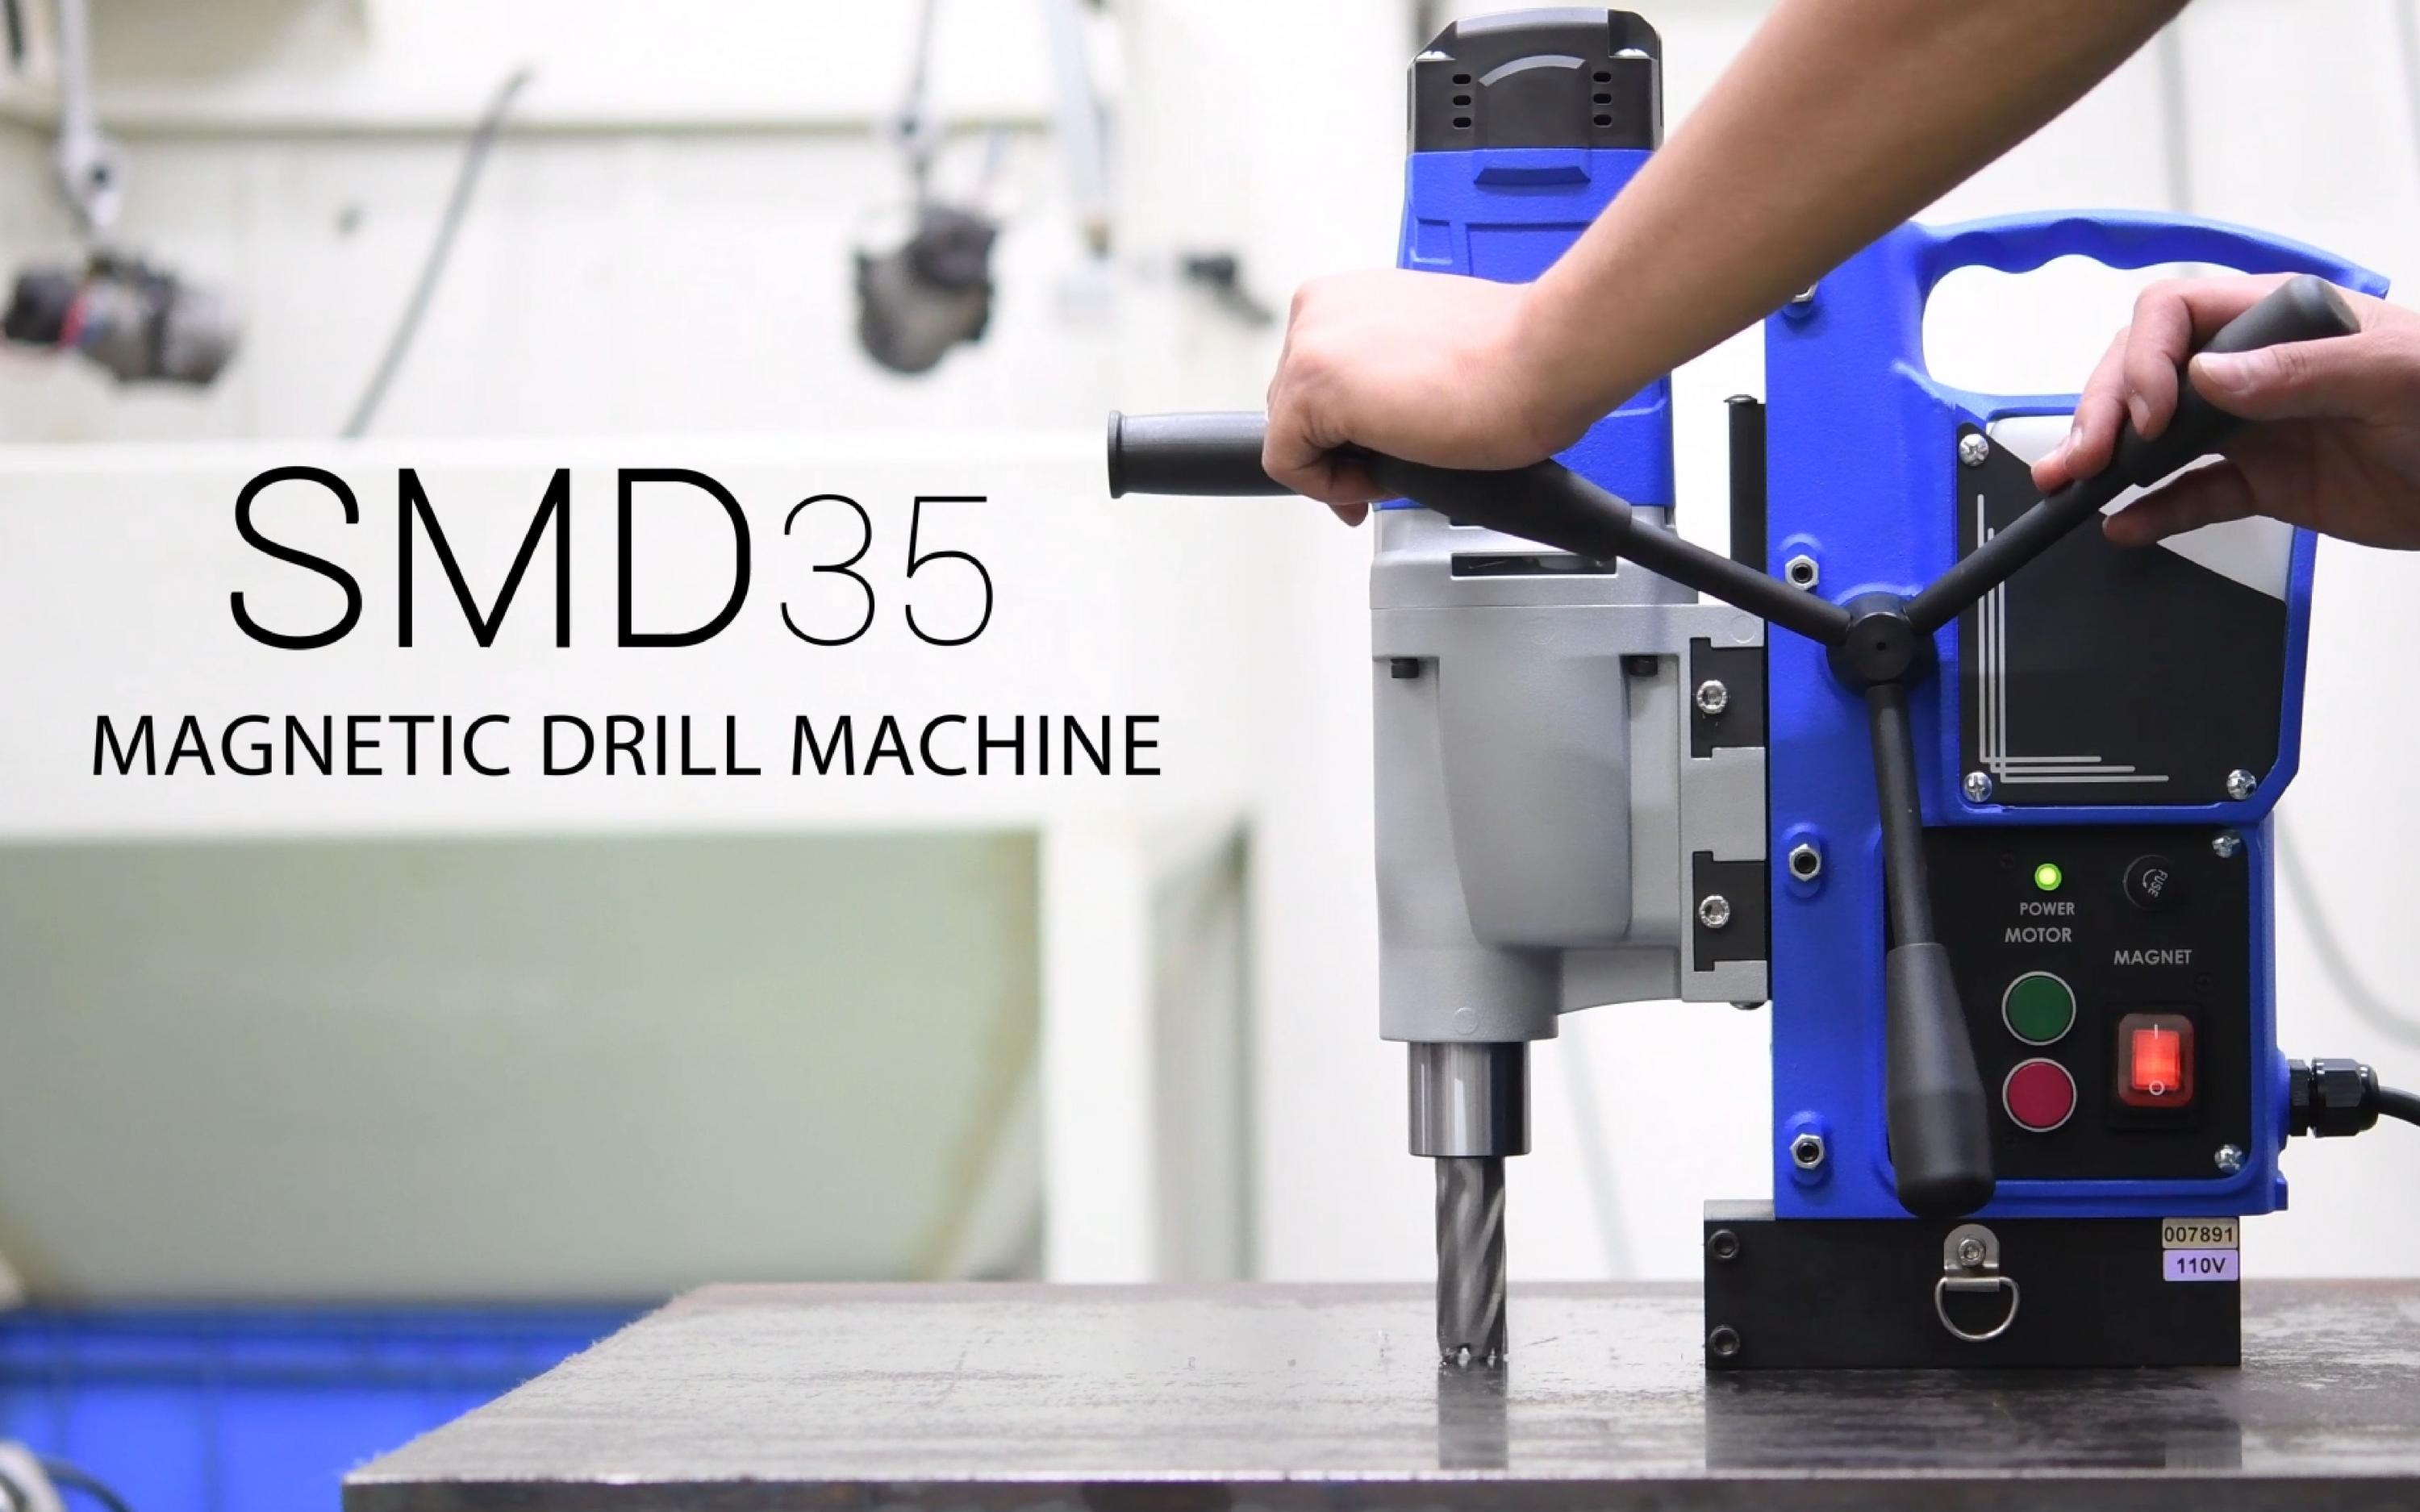 SMD35 Magnetic Drilling Machine